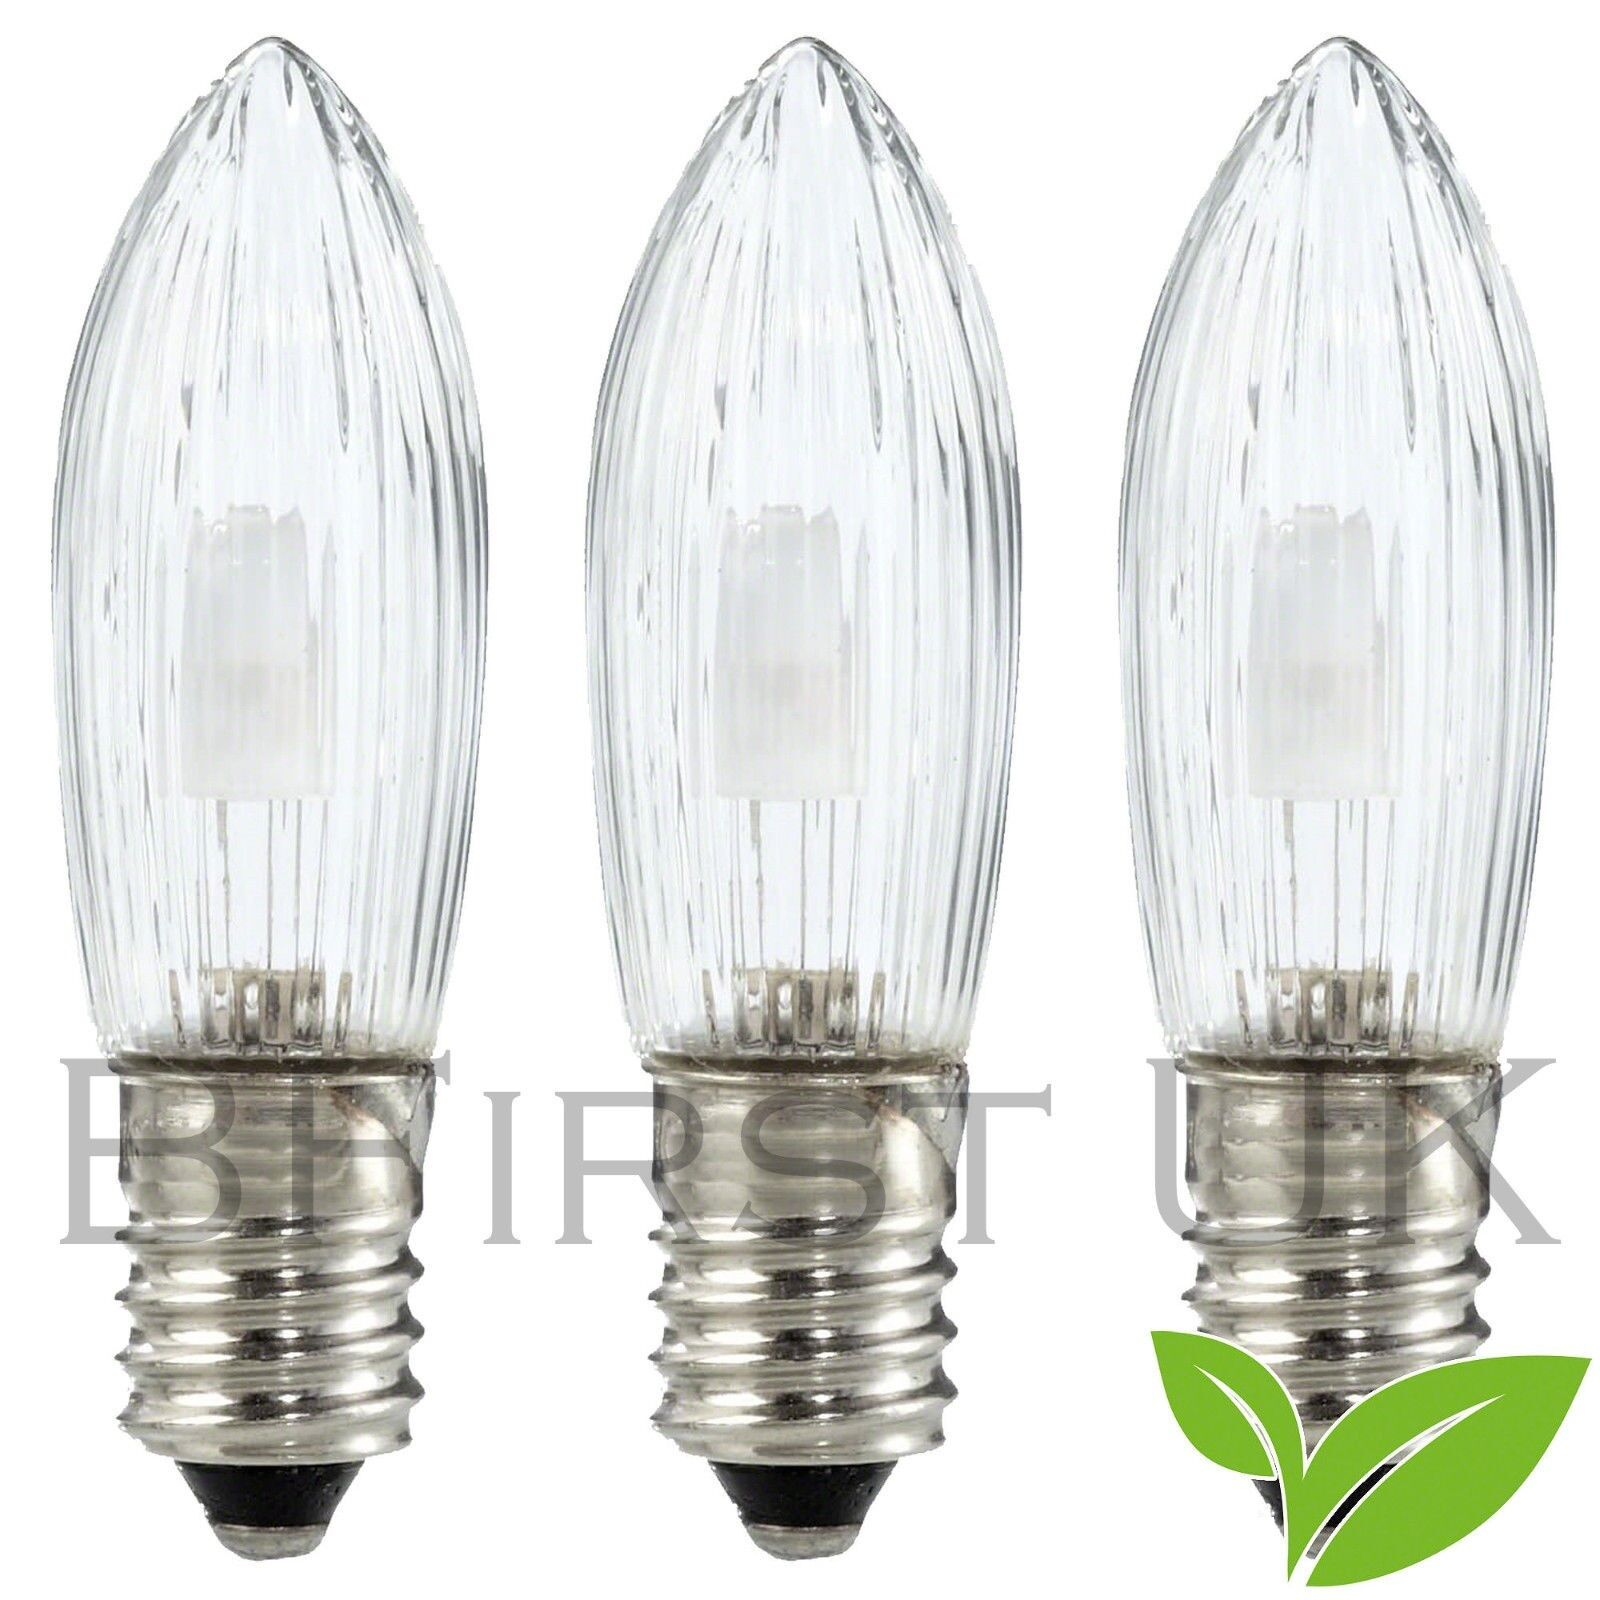 2 x Pack Of 3 Replacement Screw In Candle Bridge Bulbs 34V 3W Clear Bulb